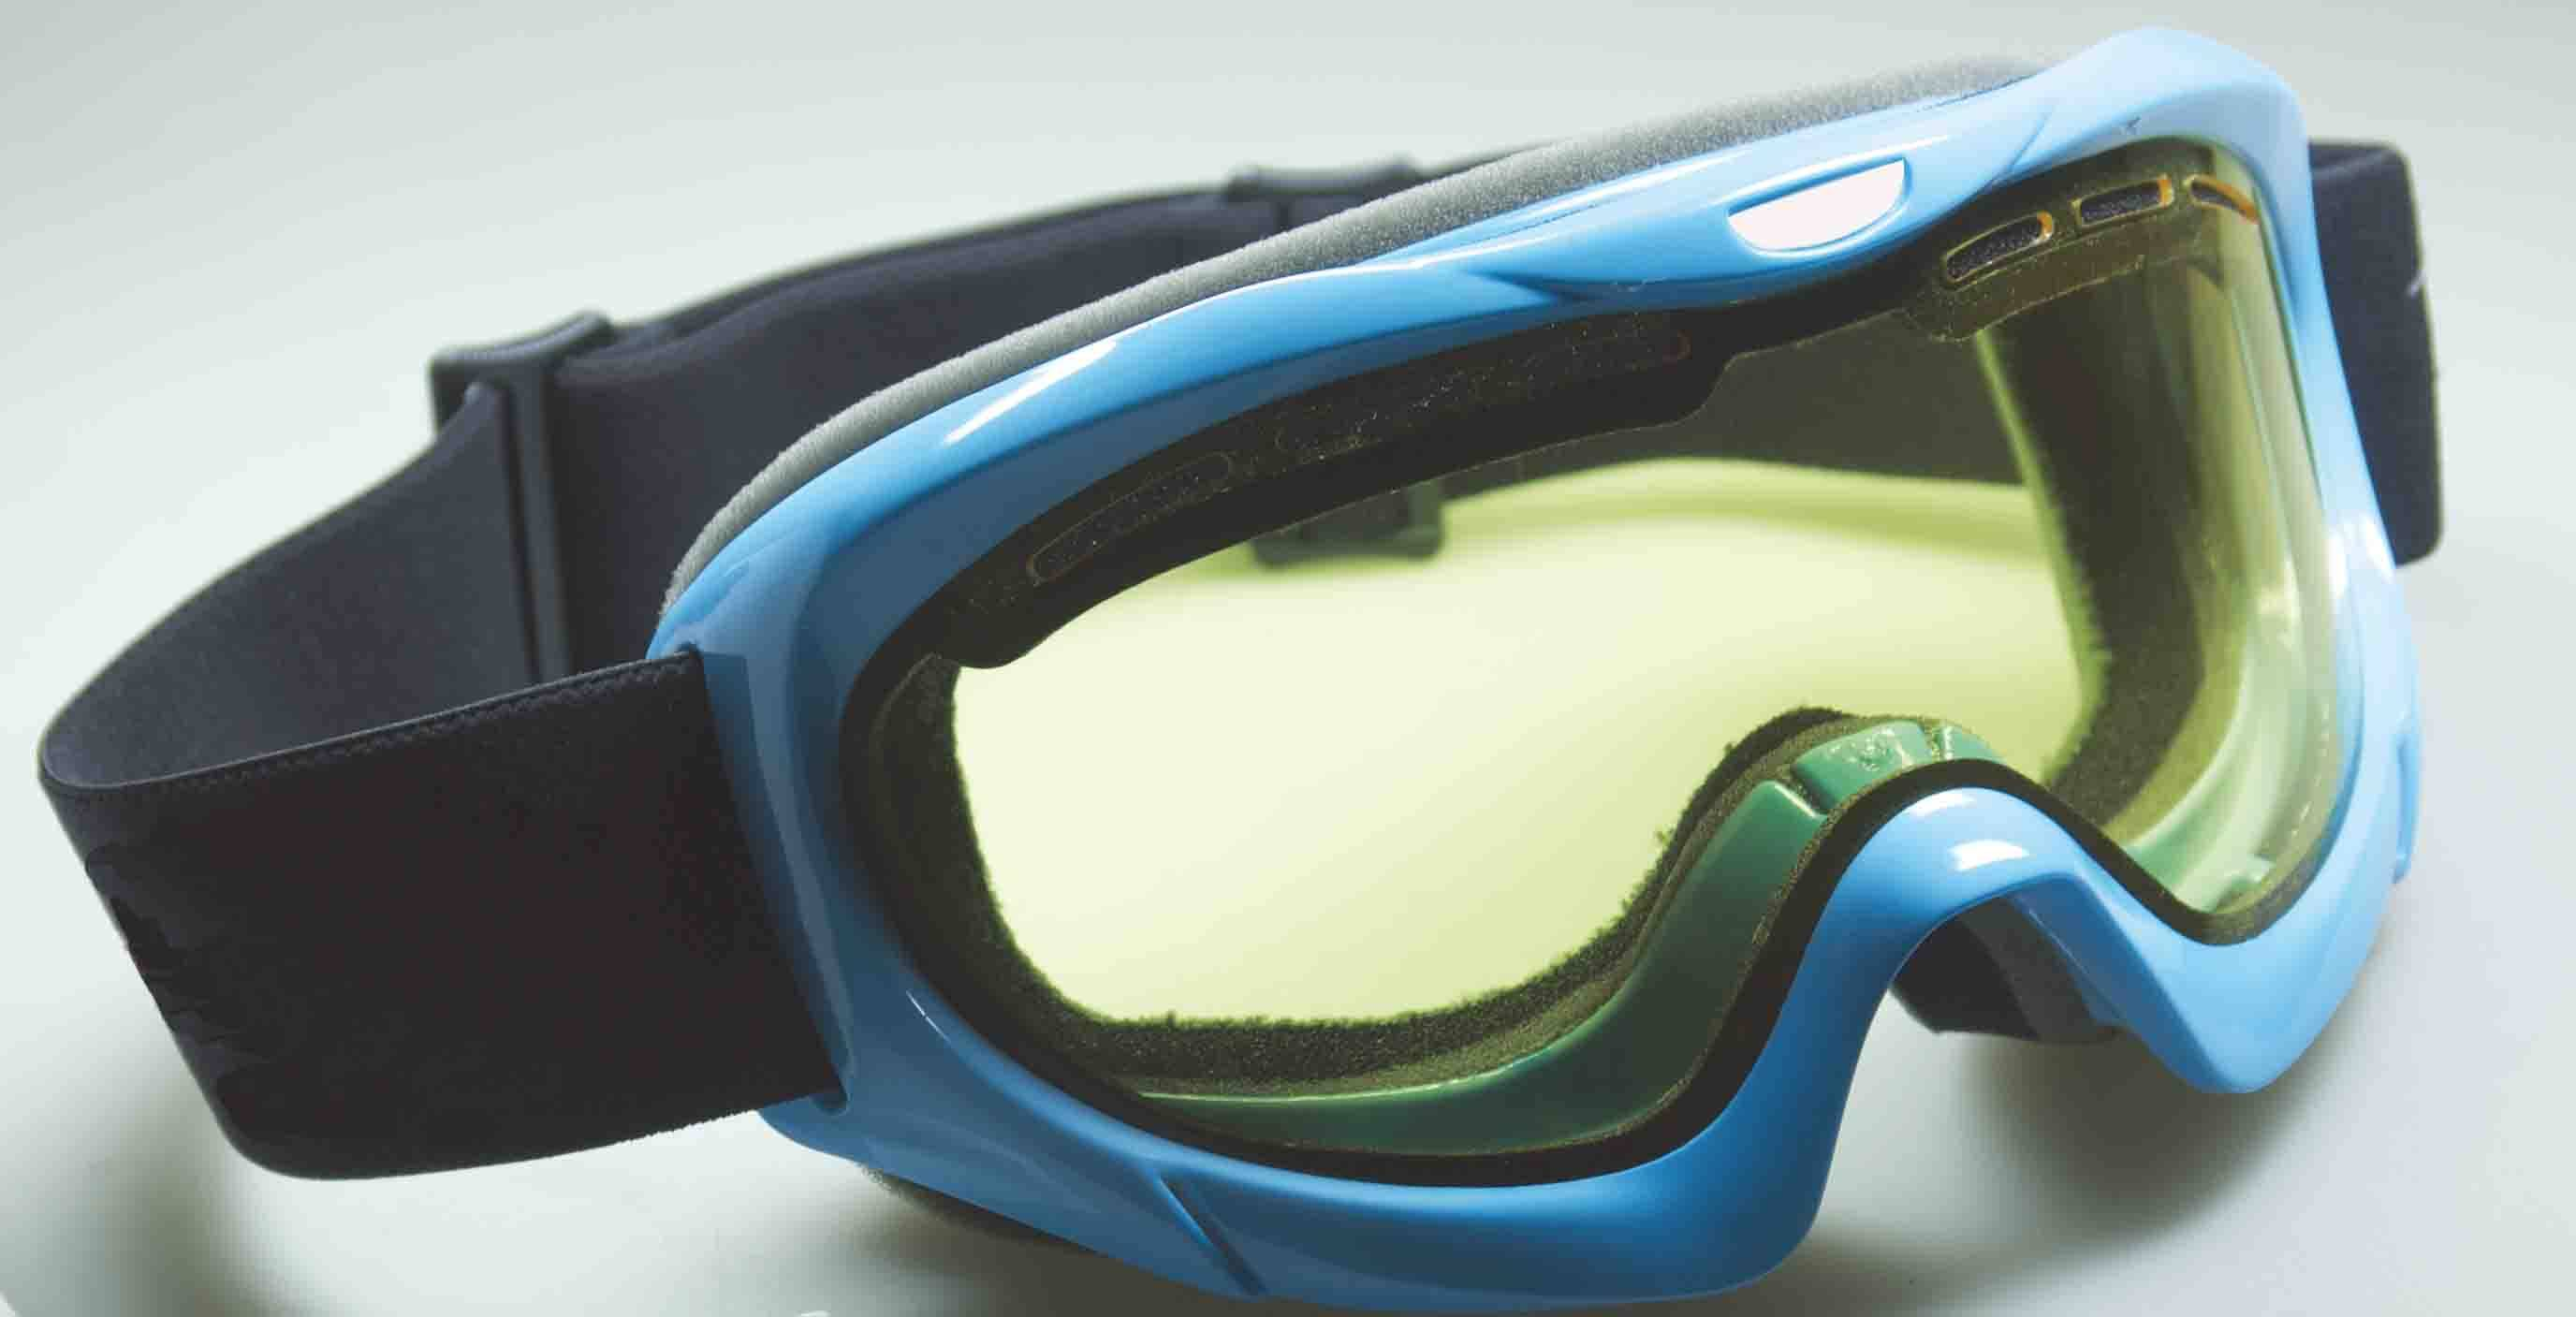 Sports ski goggle with cylindrical double lenses